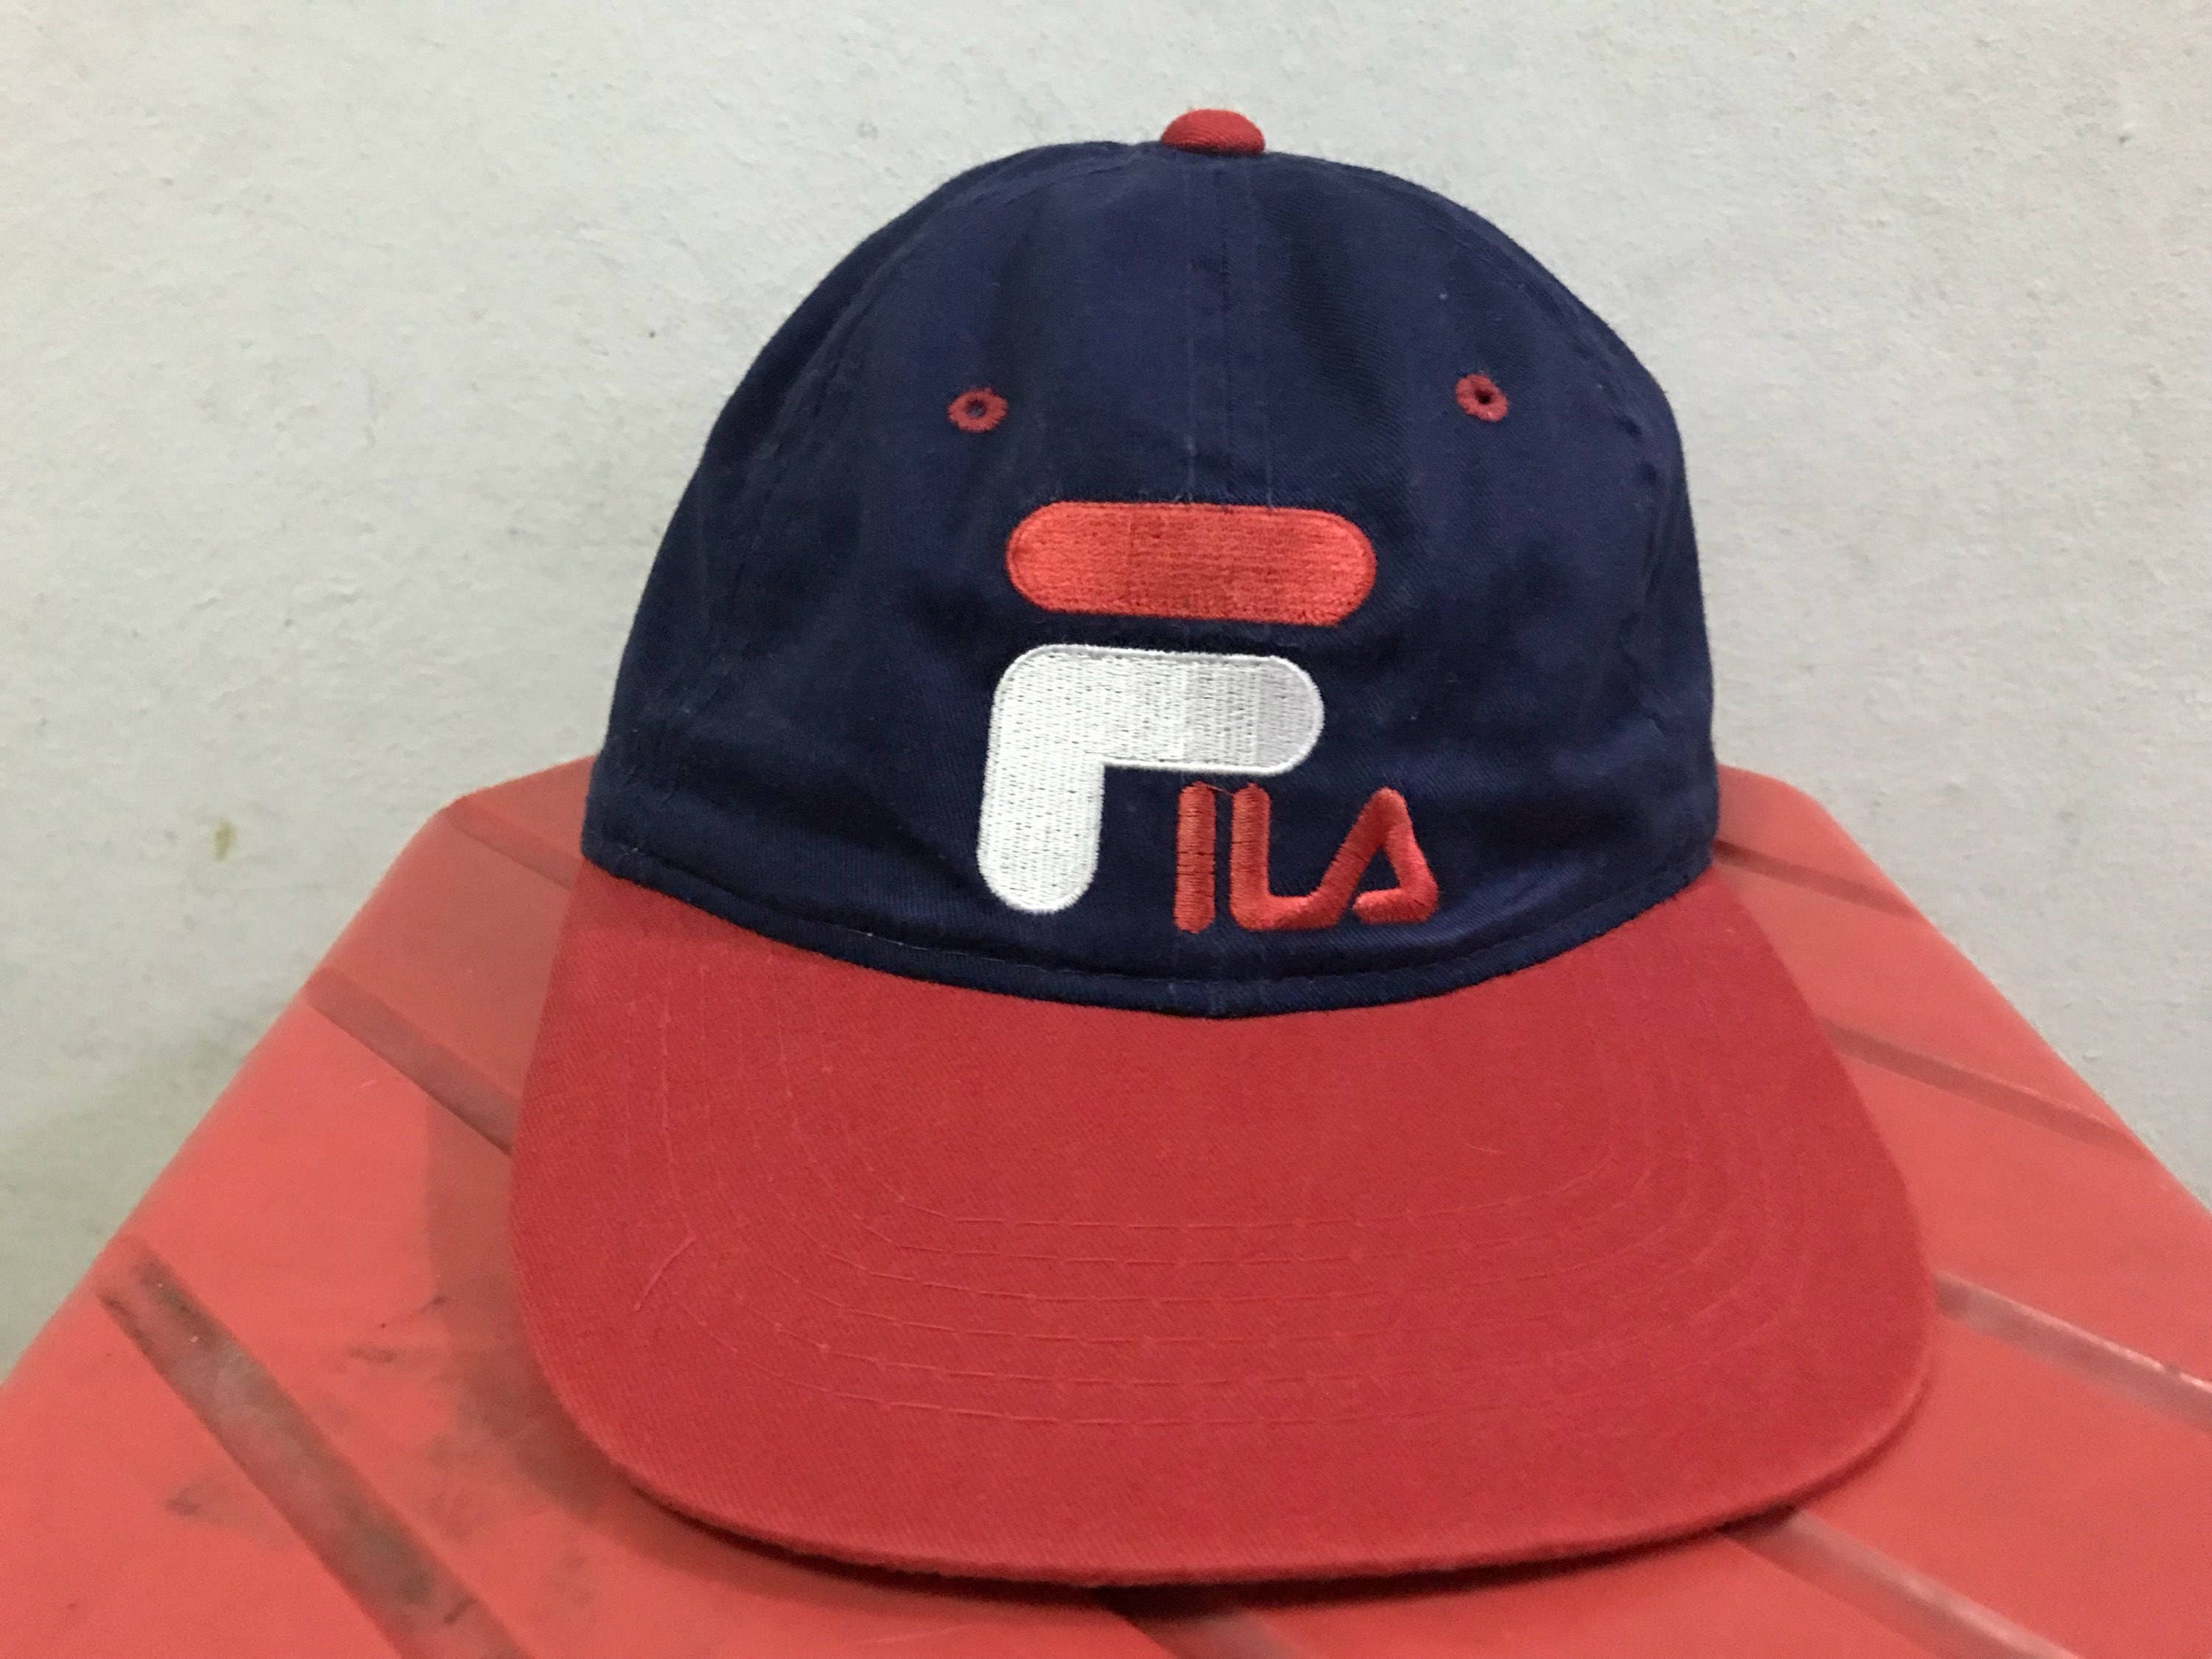 fila hat red